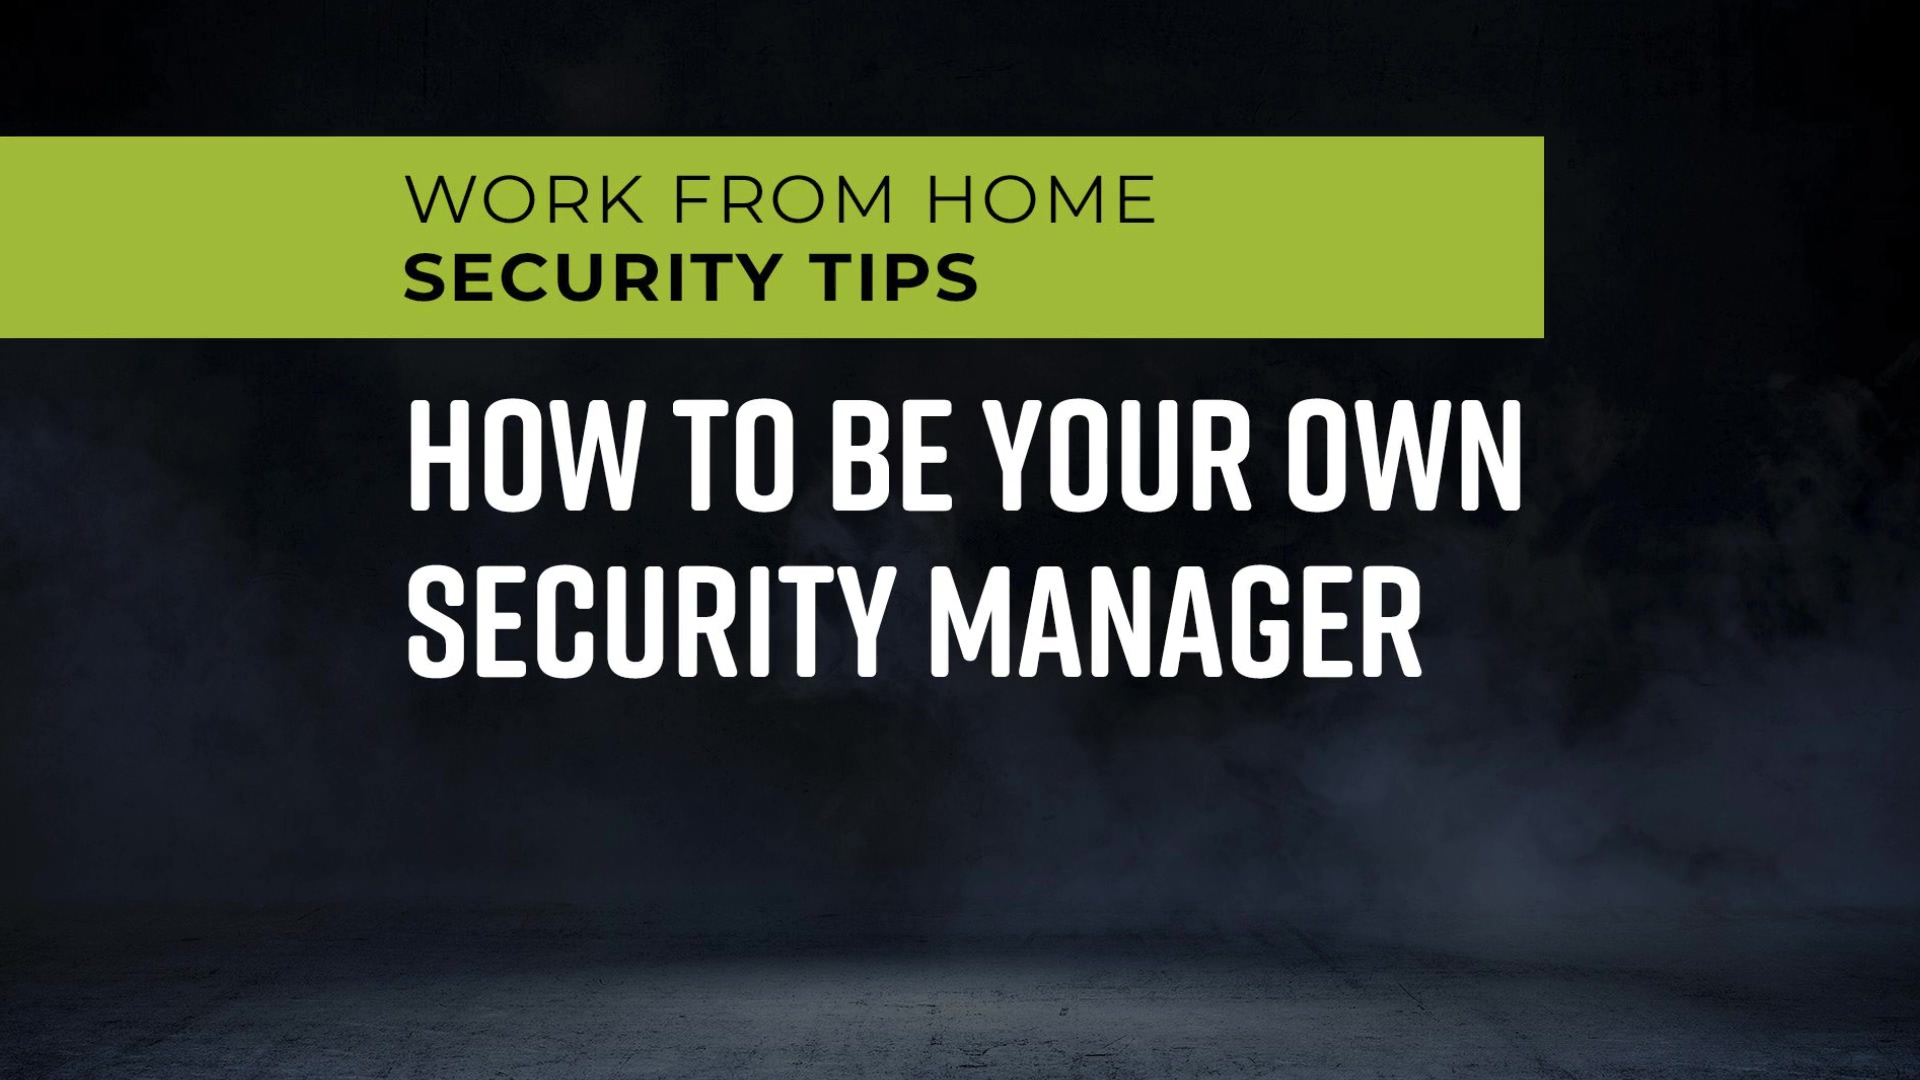 Work_From_Home_Security_Tips_-_How_to_be_Your_Own_Security_Manager_1080p